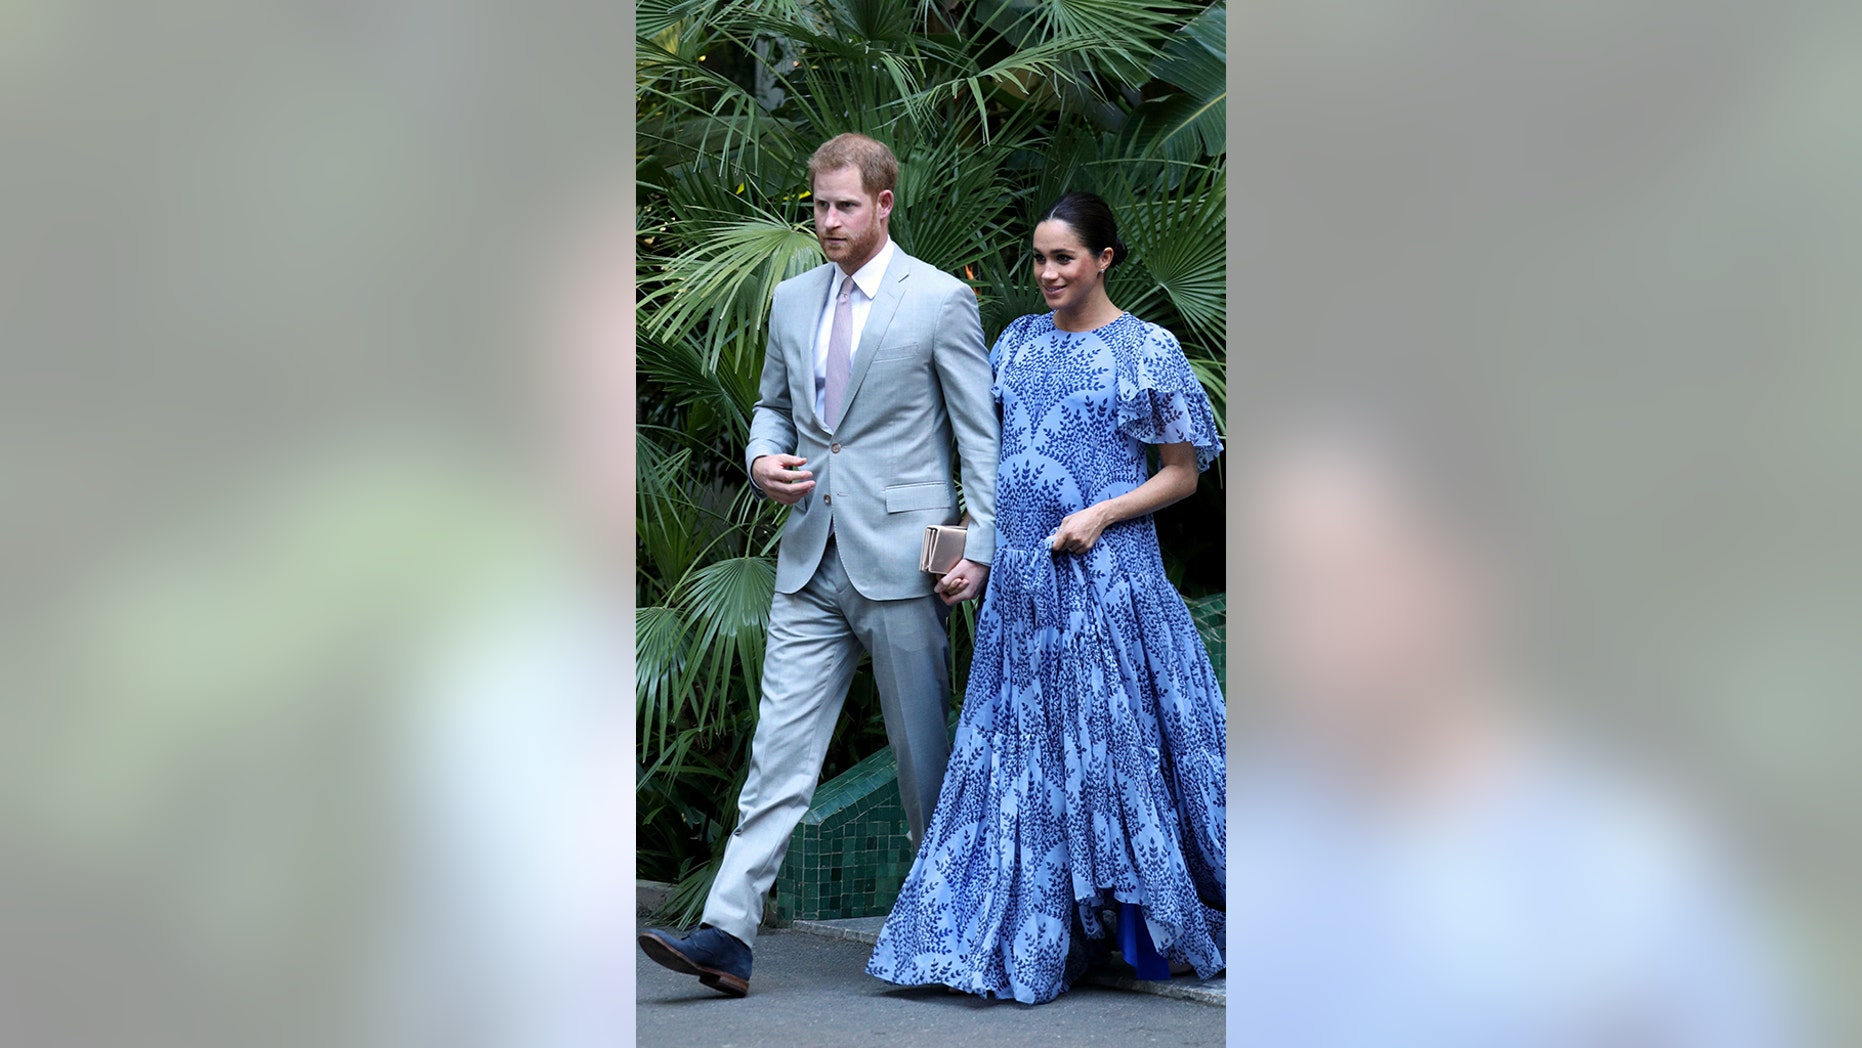 Britain's Prince Harry, left and Meghan, the Duchess of Sussex, leave the residence of Mohammed VI of Morocco, on the third day of their tour of Morocco, in Rabat, Monday, Feb. 25, 2019.